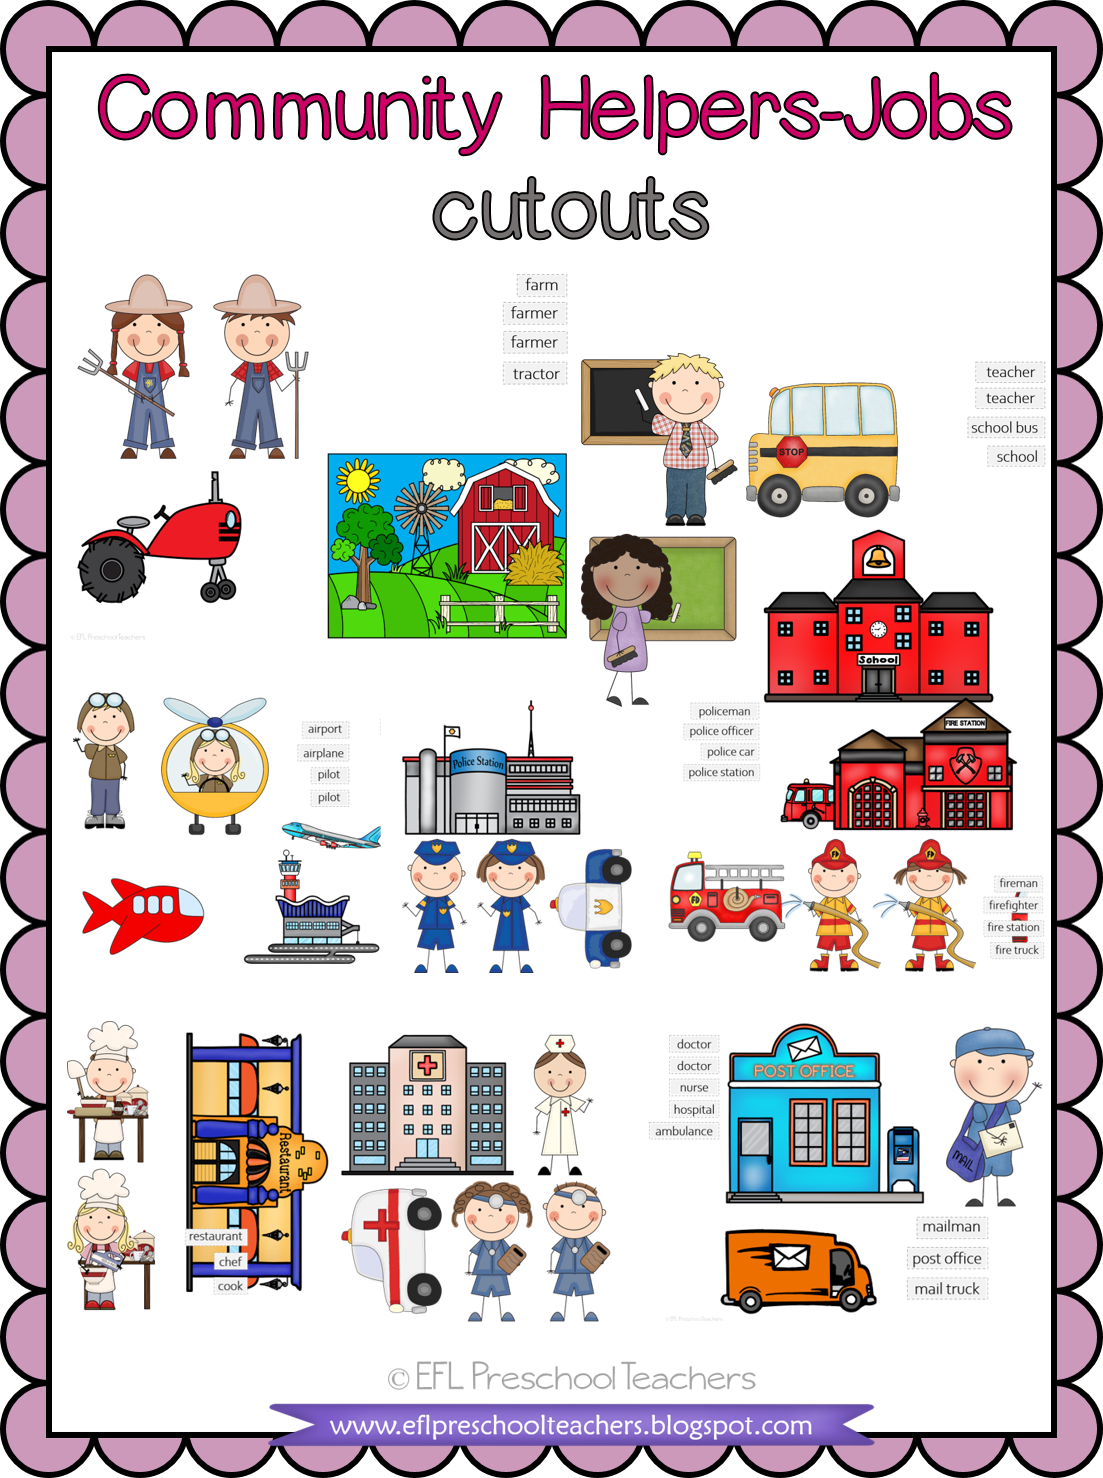 Esl Efl Preschool Teachers Esl Community Helpers Cutouts